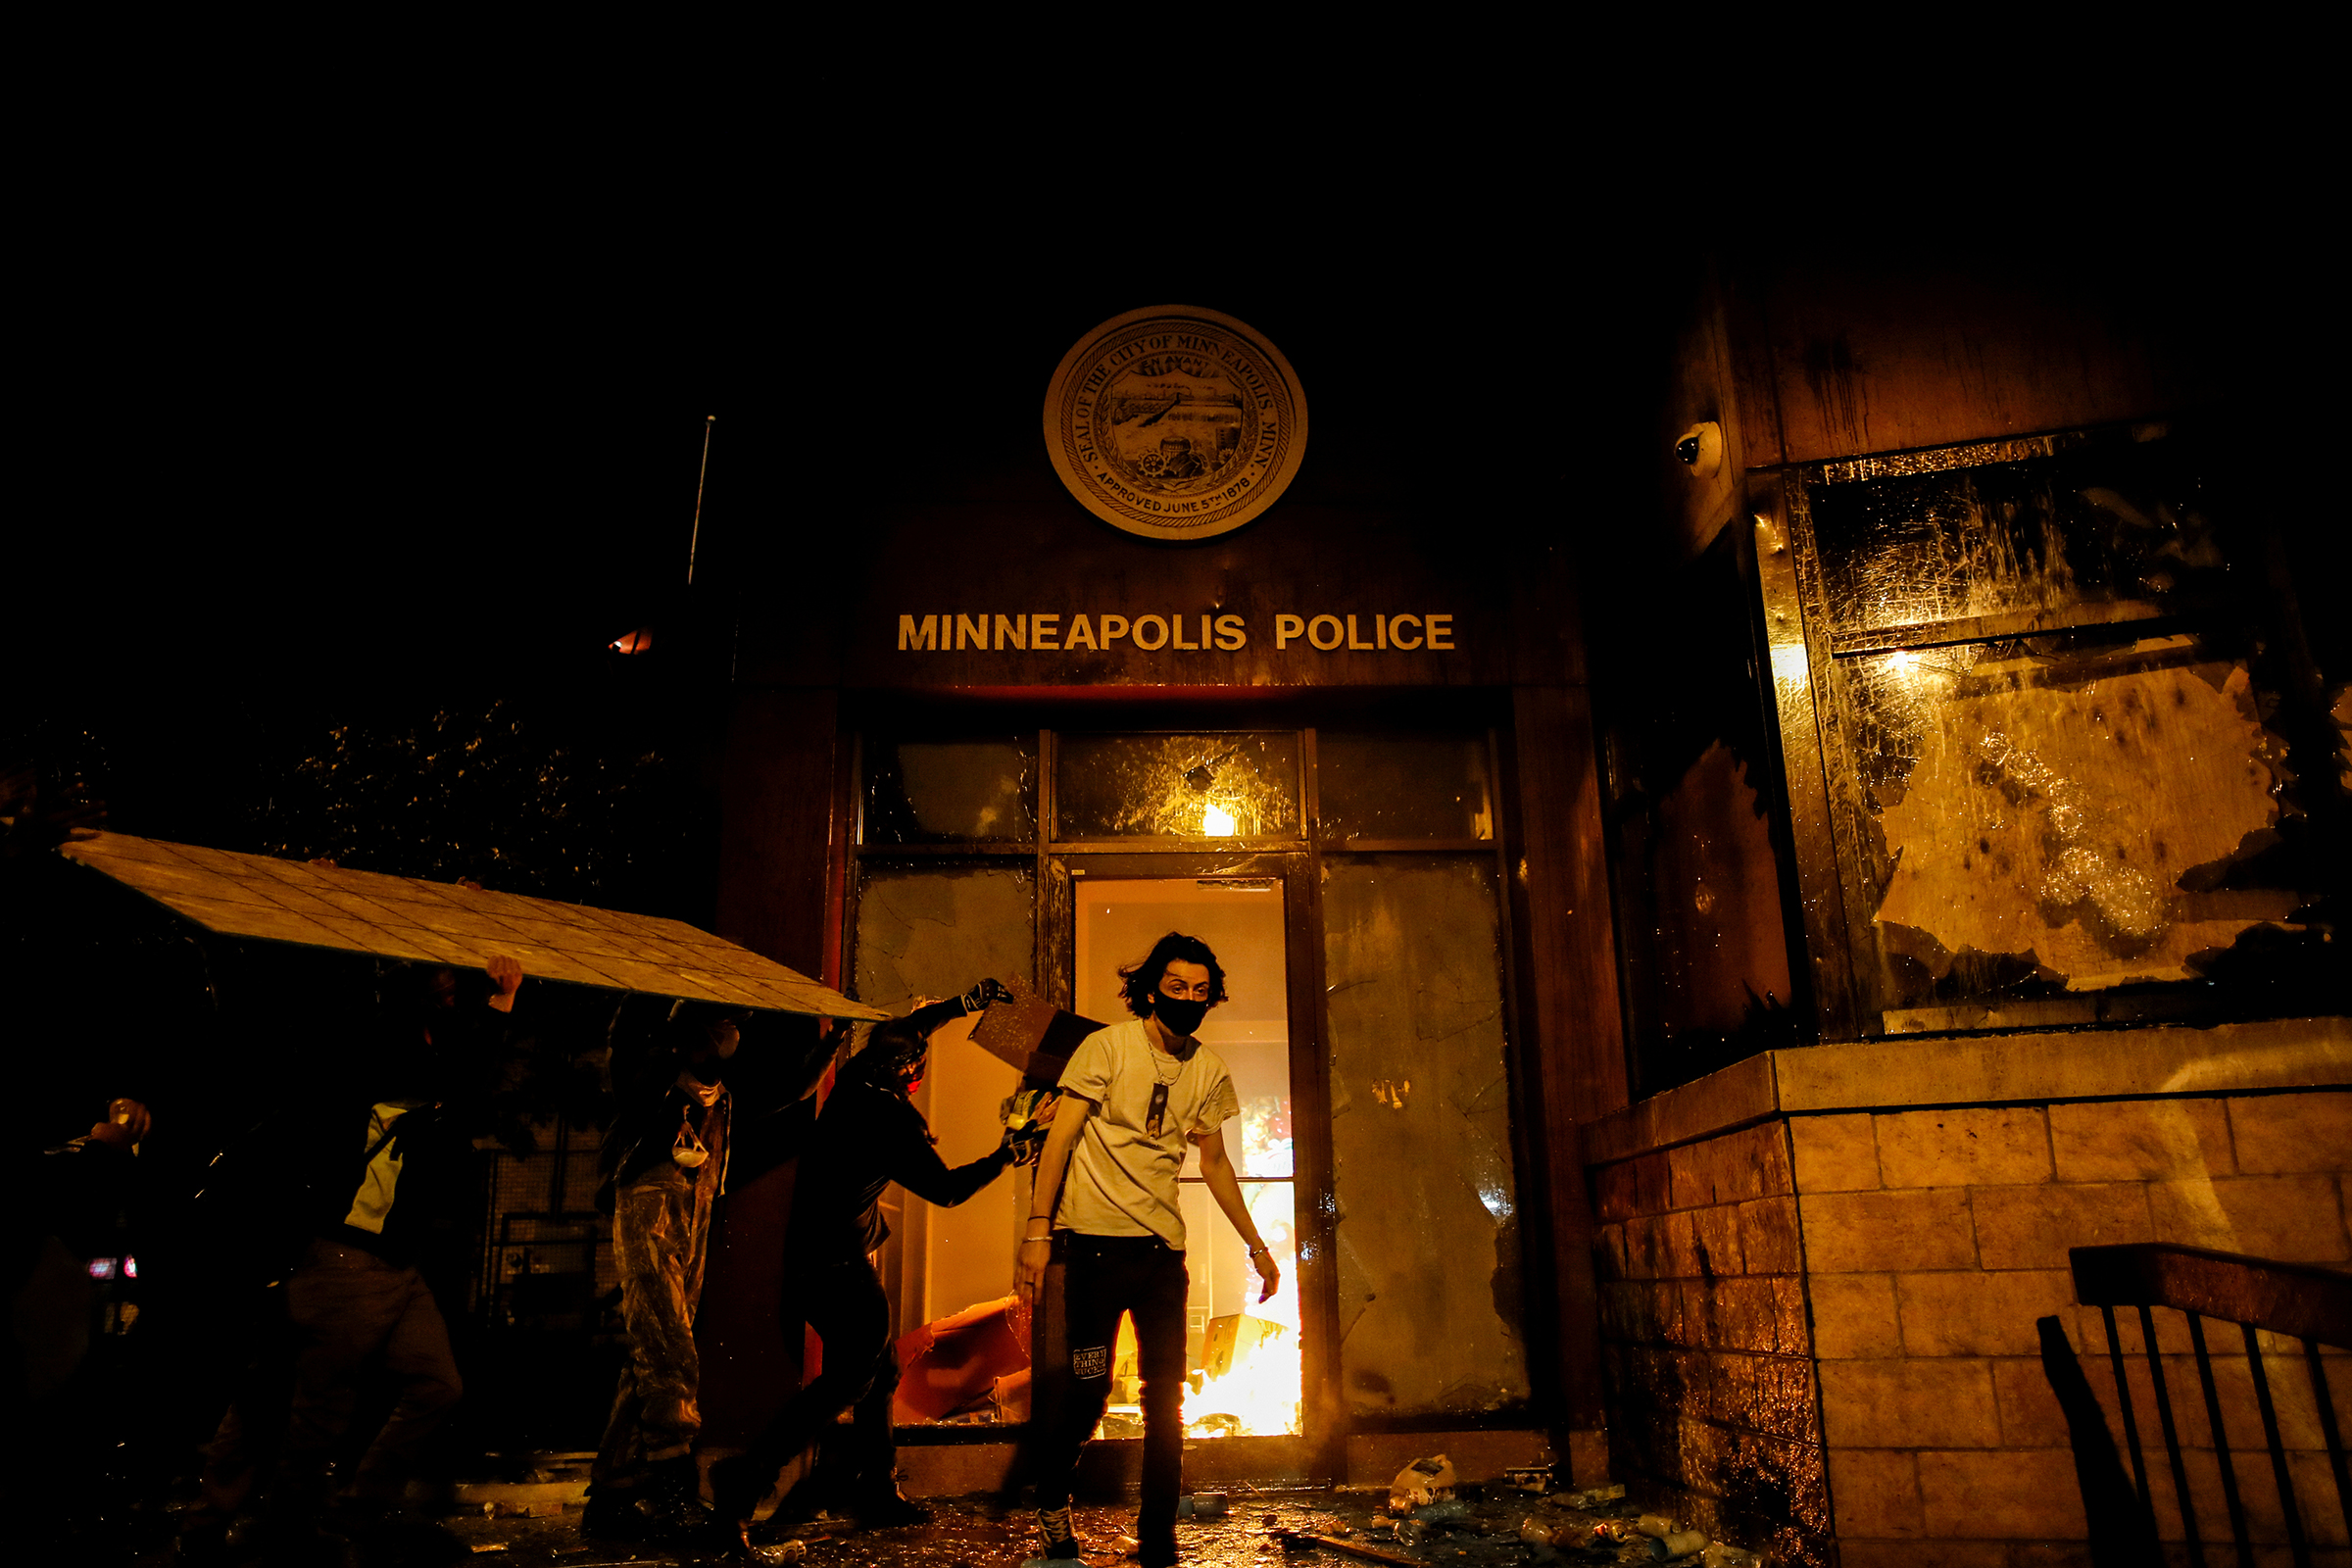 Protesters set fire to the entrance of a police precinct in Minneapolis on May 28 as demonstrations continue in the wake of George Floyd's death. Three days earlier, a white police officer was caught on a bystander's video pressing his knee into the neck of Floyd, a black man, who later died at a hospital.